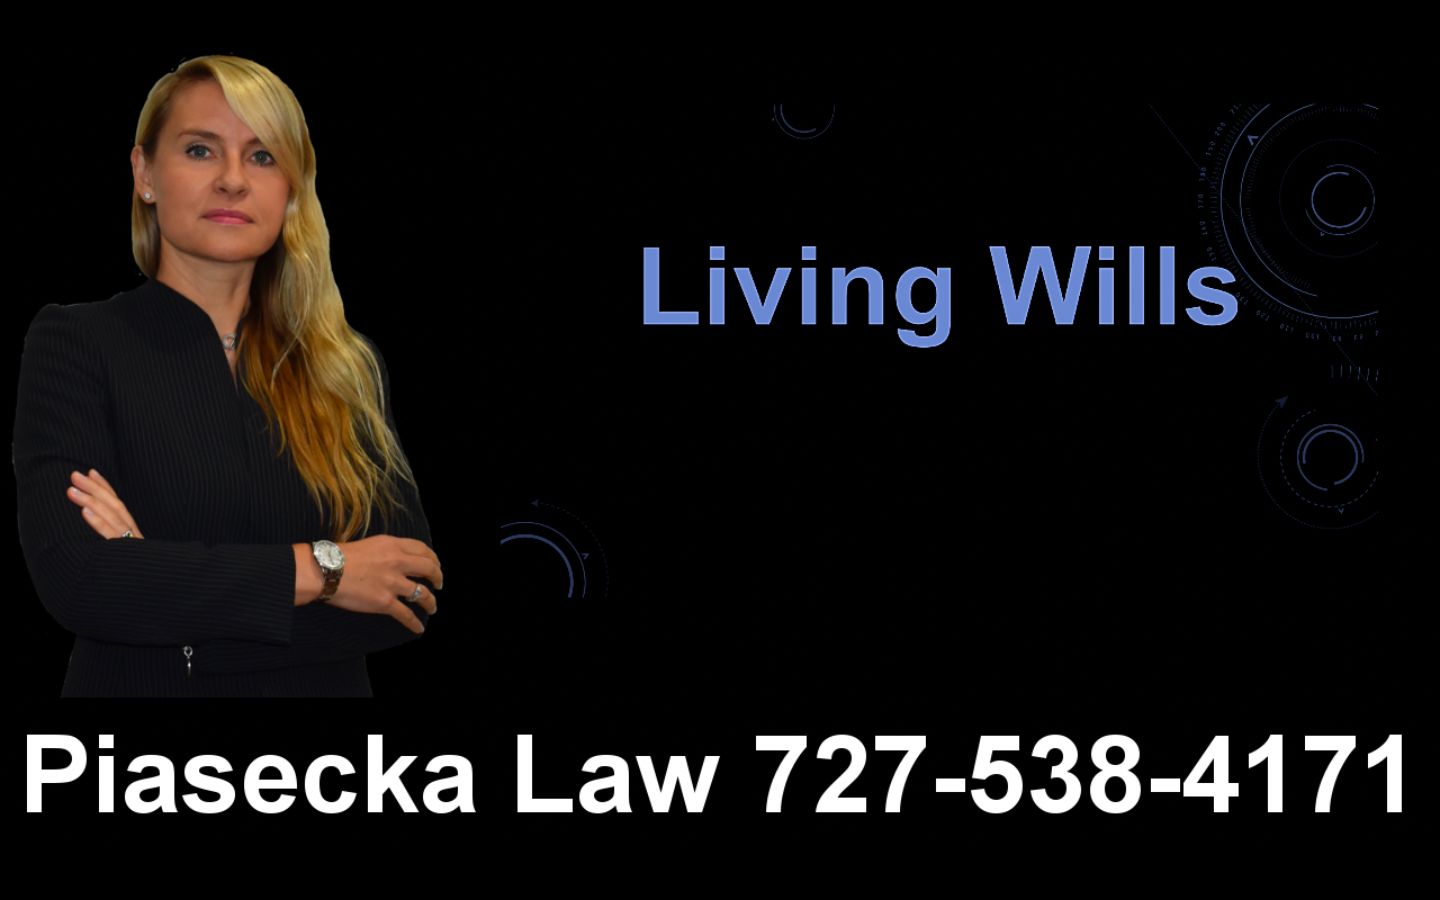 Living Wills, Clearwater, Florida, Lawyer, Attorney, Agnieszka, Aga, Piasecka